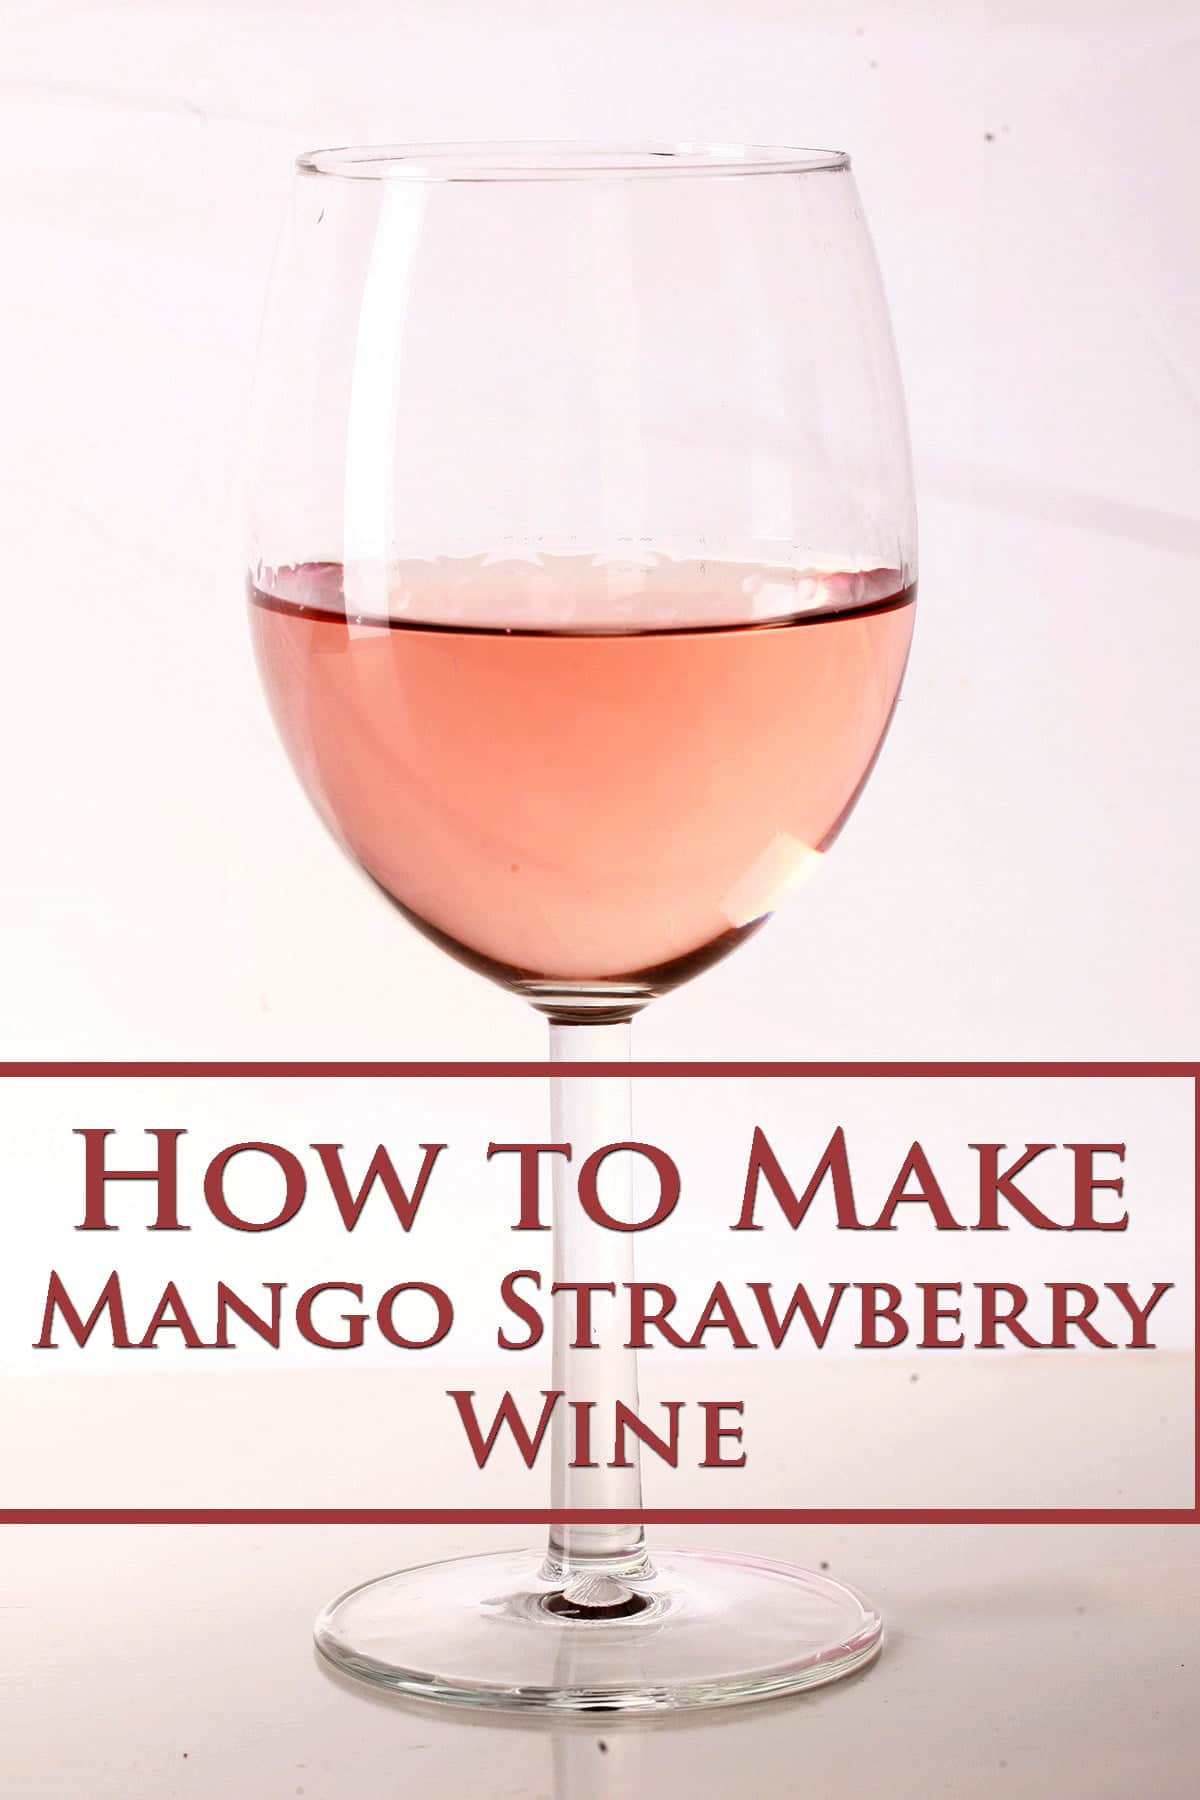 """A close up view of a glass of pink wine, labelled with """"How to make mango strawberry wine"""""""